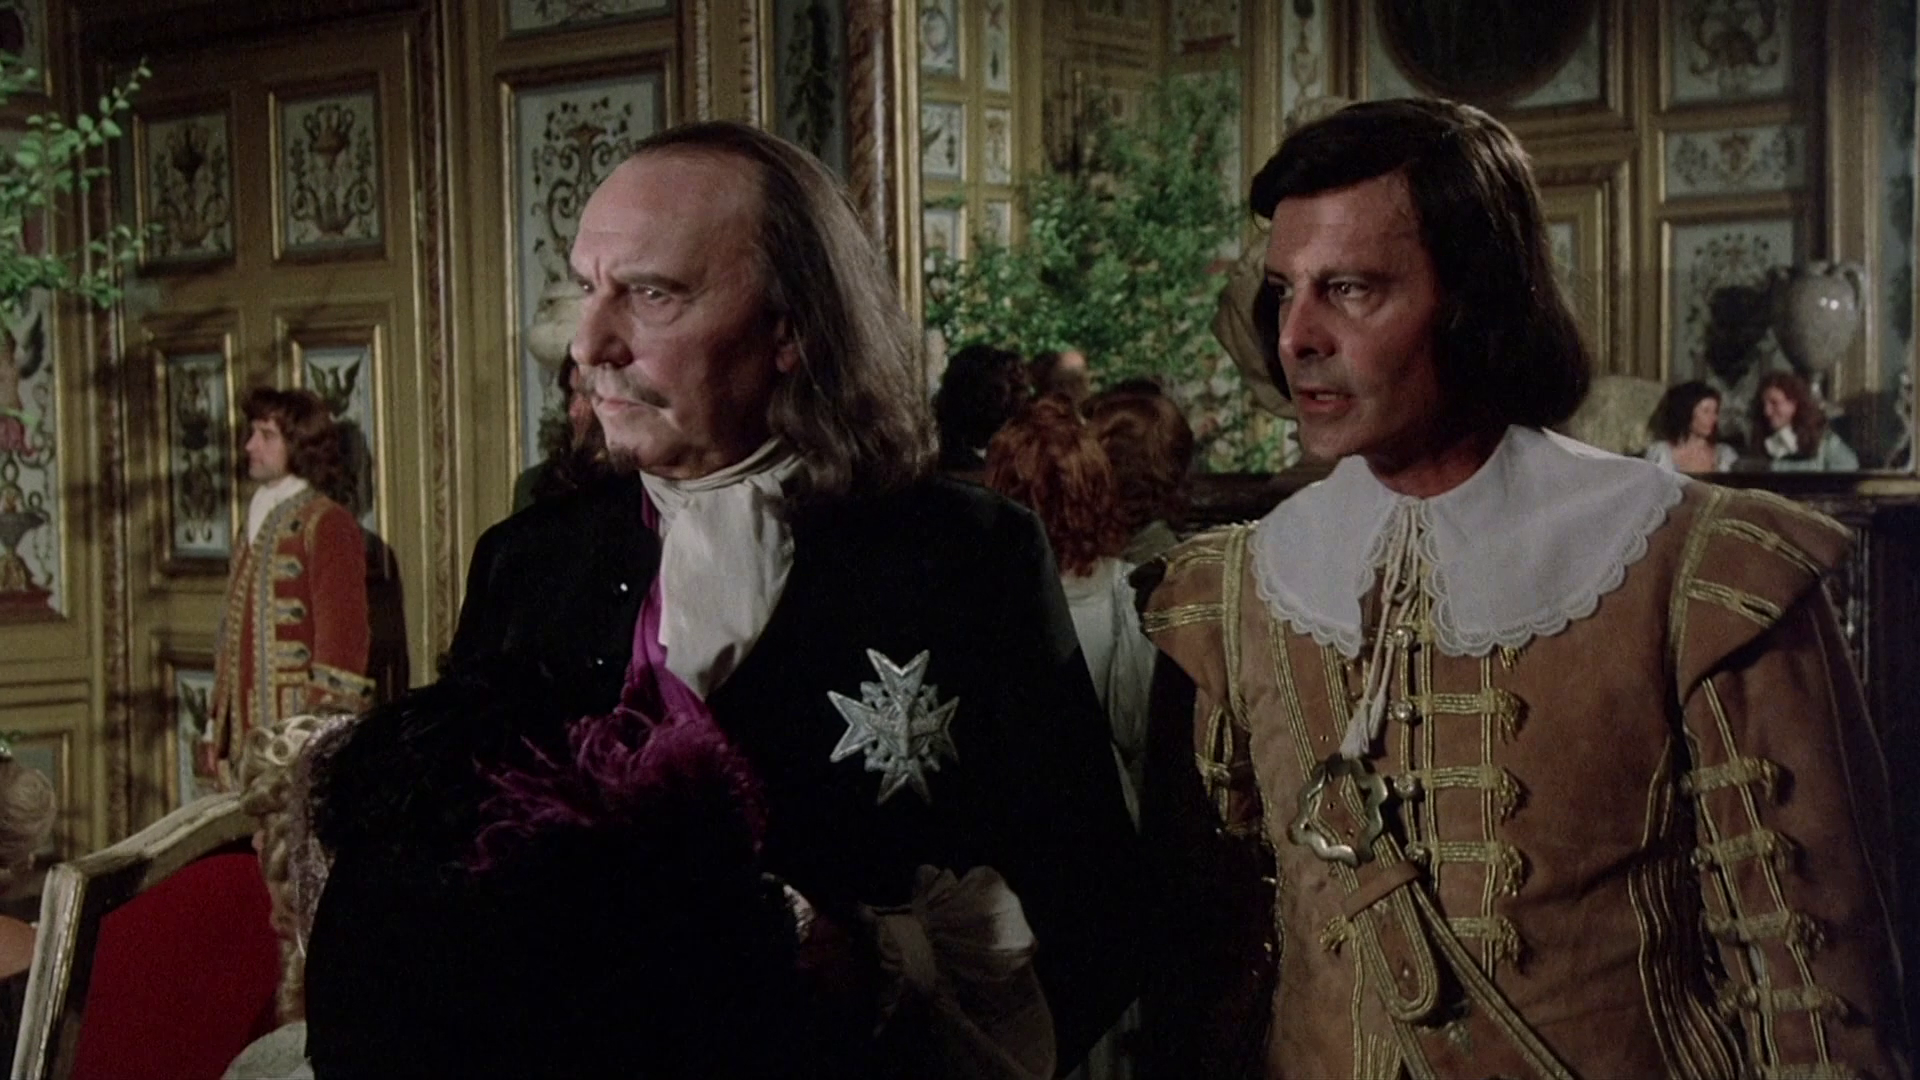 The Man in the Iron Mask 1977 1080p BluRay FLAC x264-SPOOKS